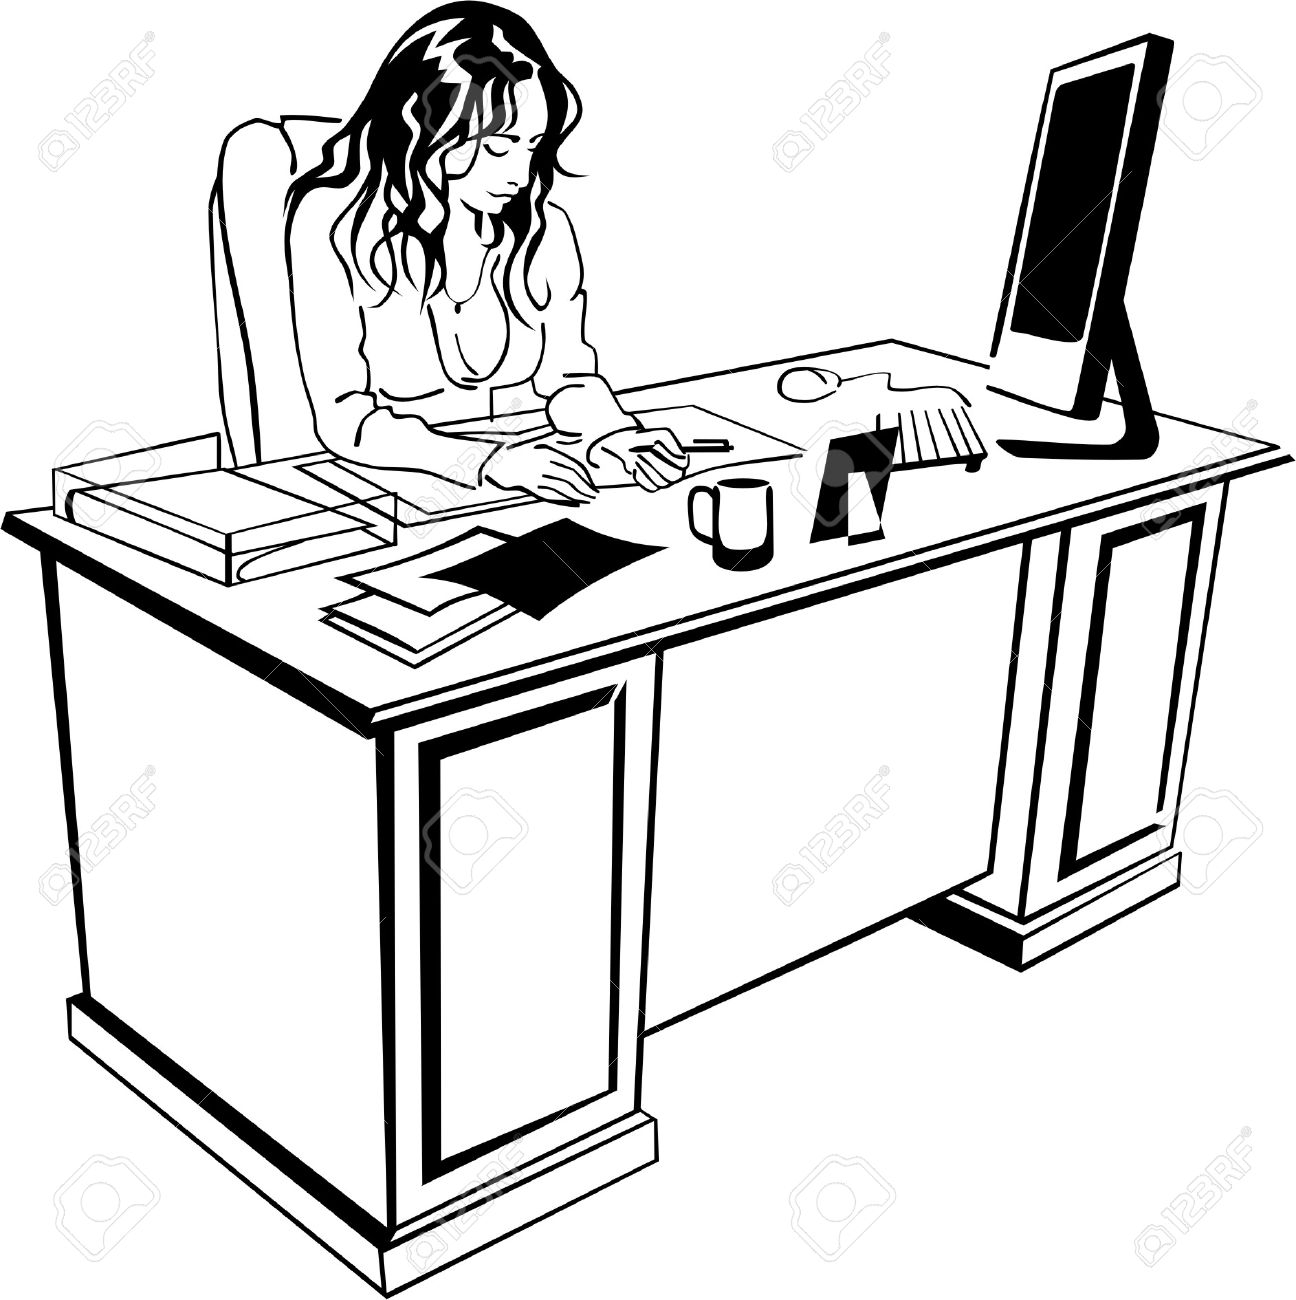 Office clerk clipart.